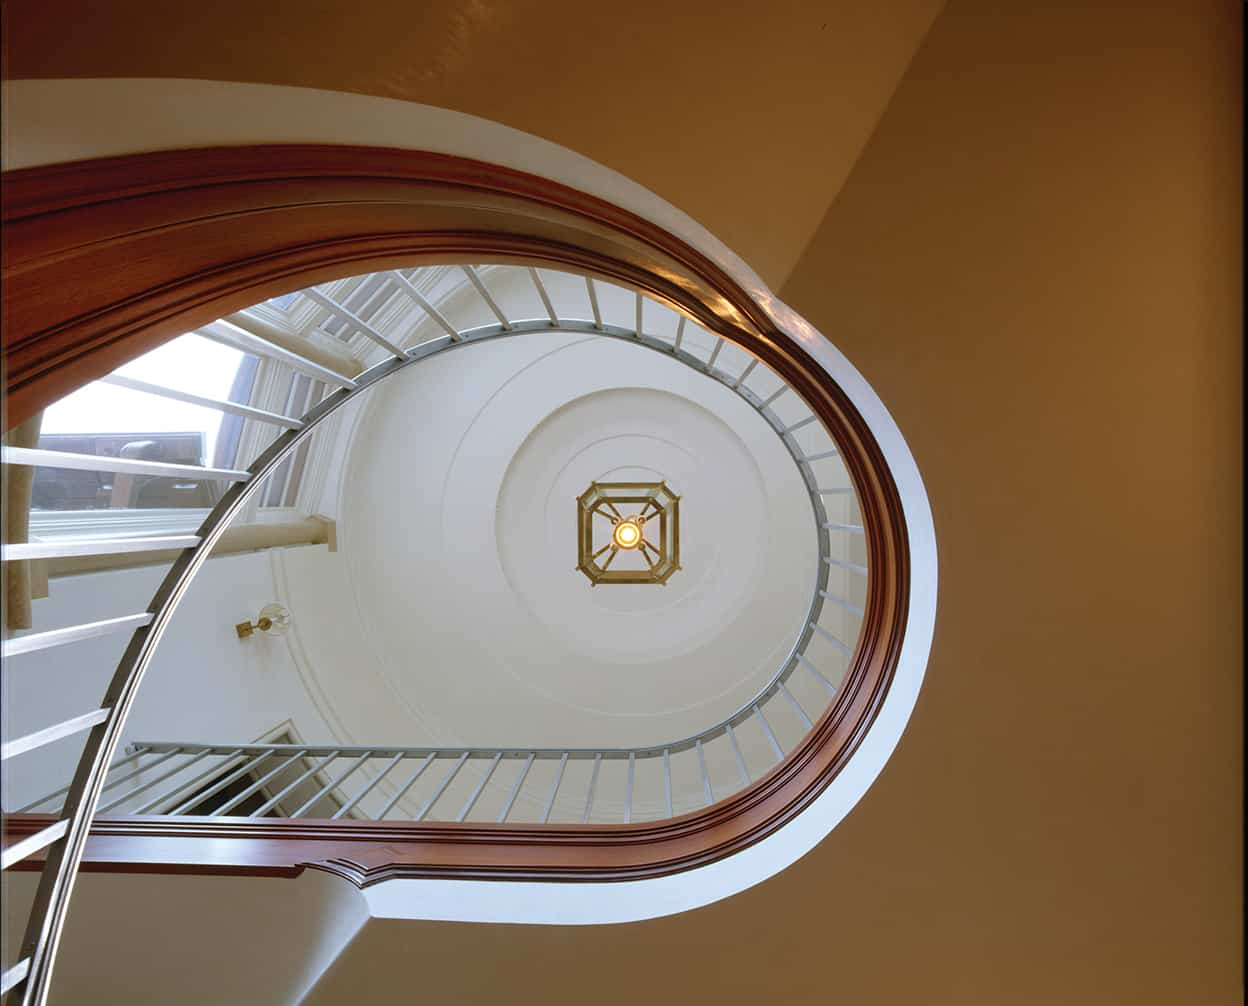 Looking up through the sweeping staircase's circle, we see the tower's circular trayed ceiling and wall of windows.